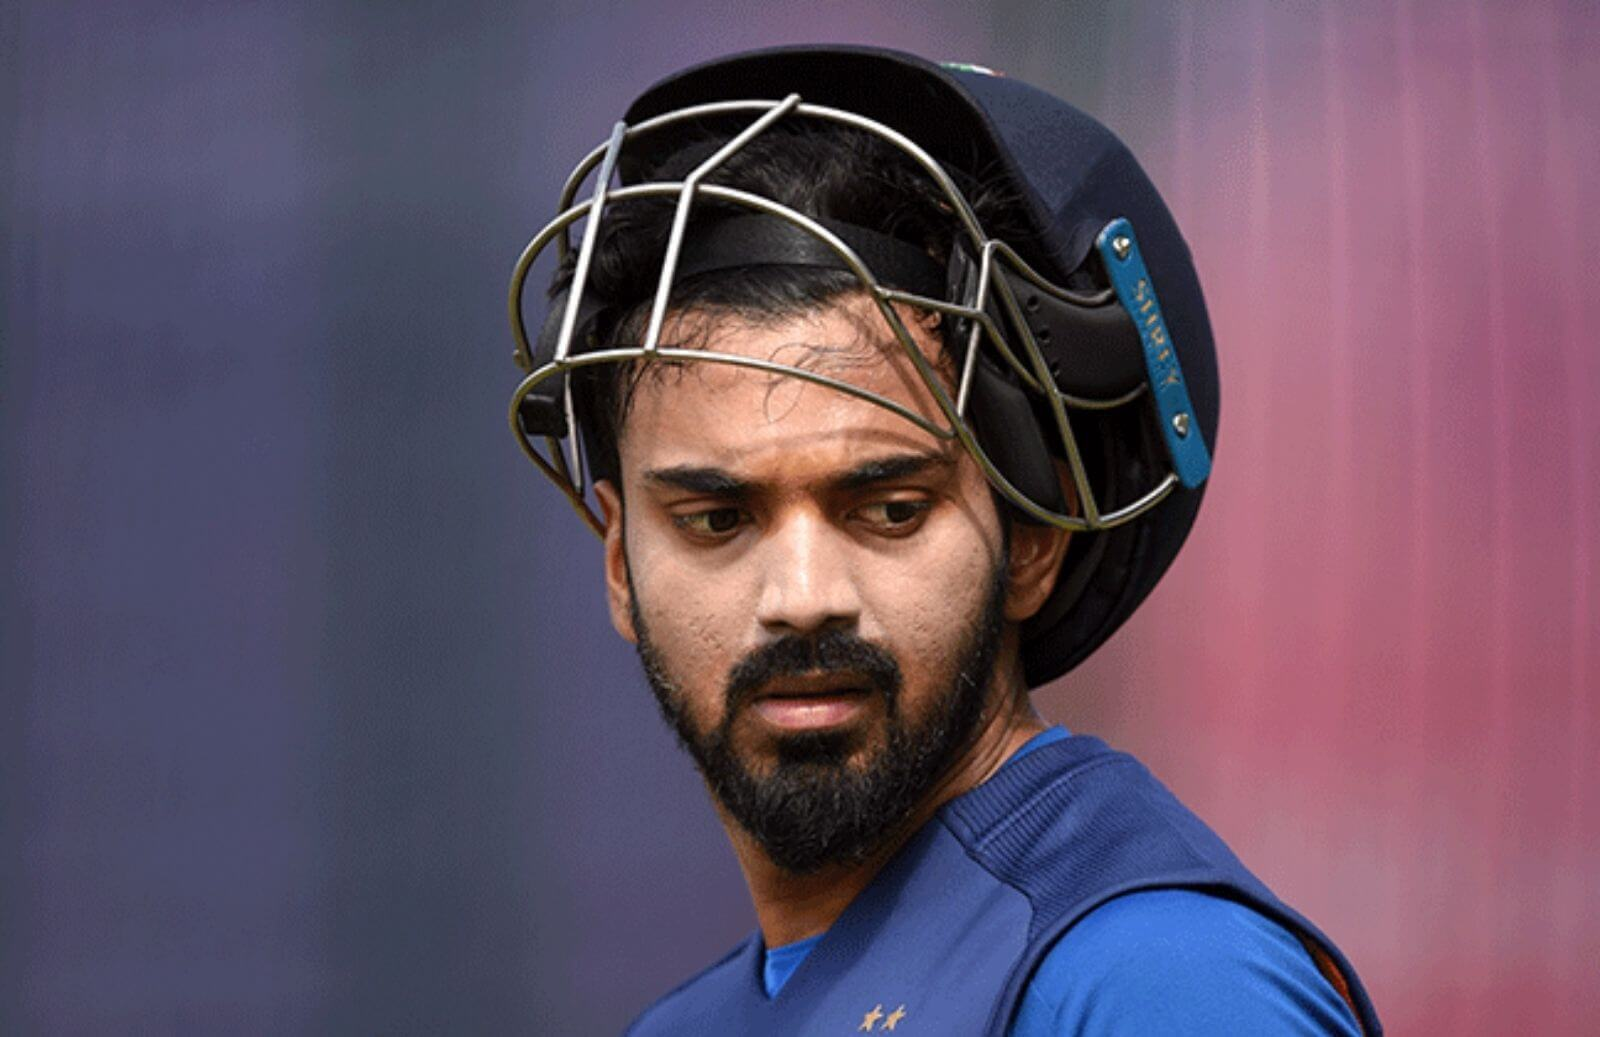 IND vs AUS: India Suffers Big Injury Blow, KL Rahul Ruled Out From The Remaining Tests Of Border-Gavaskar Trophy 2020-21